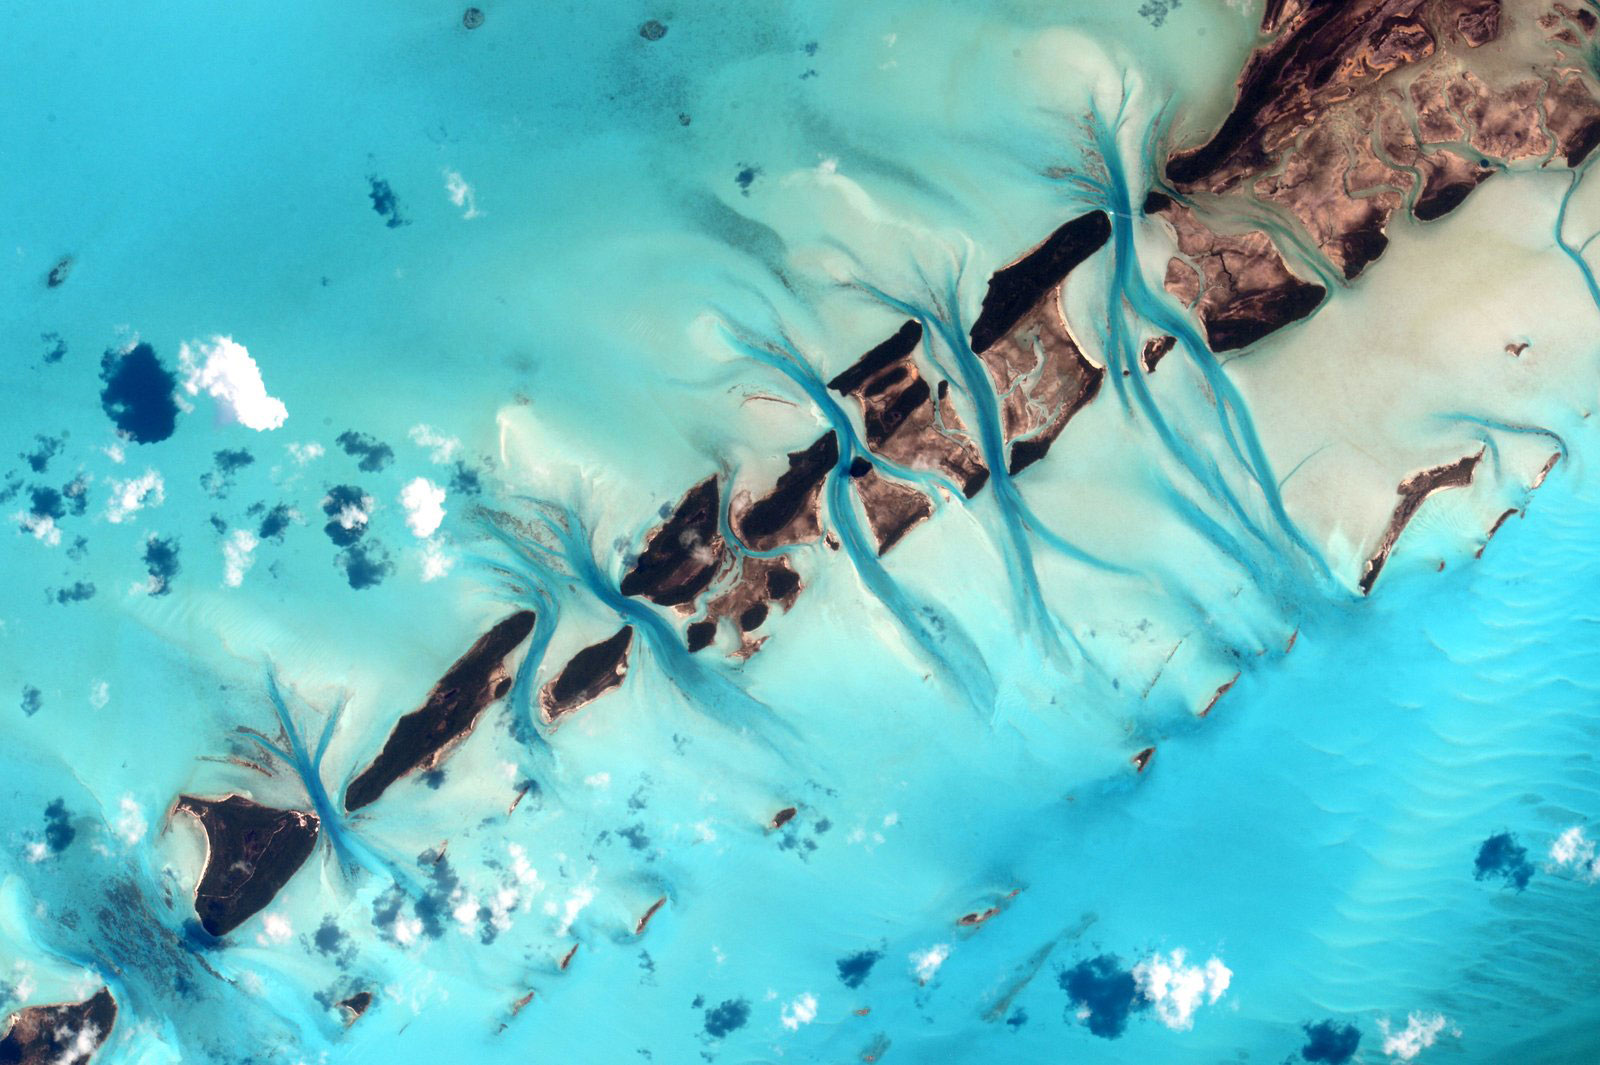 Aqua waters stream between the islands of the Bahamas - aerial art viewed from space.